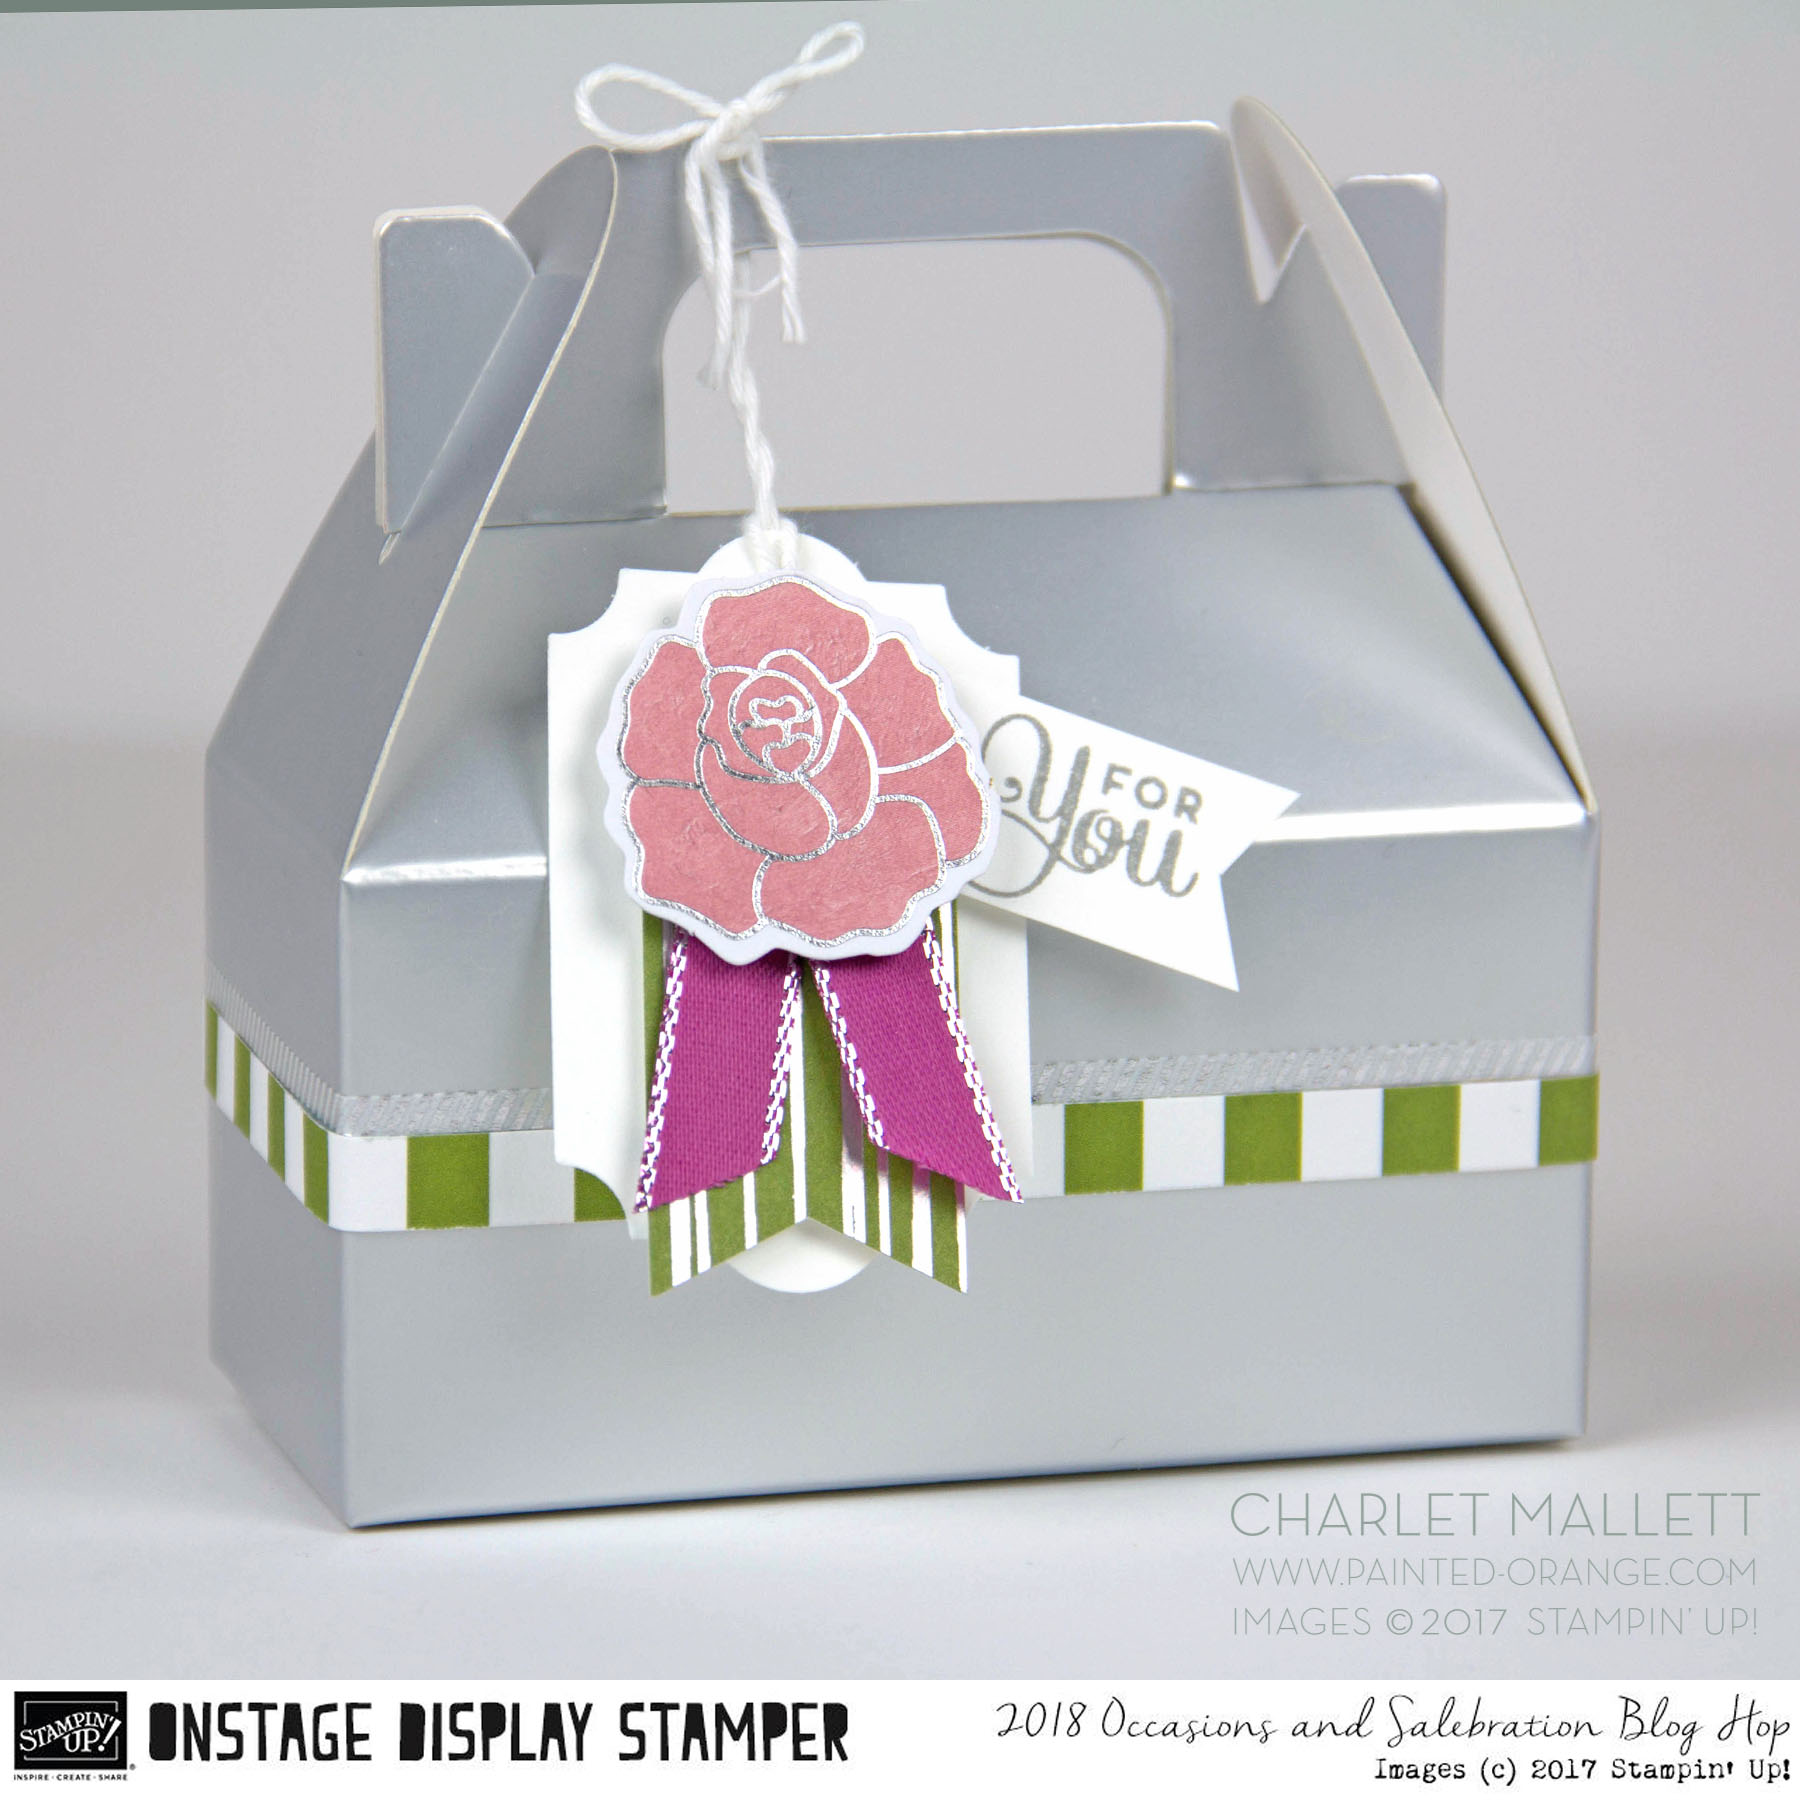 For You gift box - Cake Soiree stamp set - Charlet Mallett - Stampin' Up!